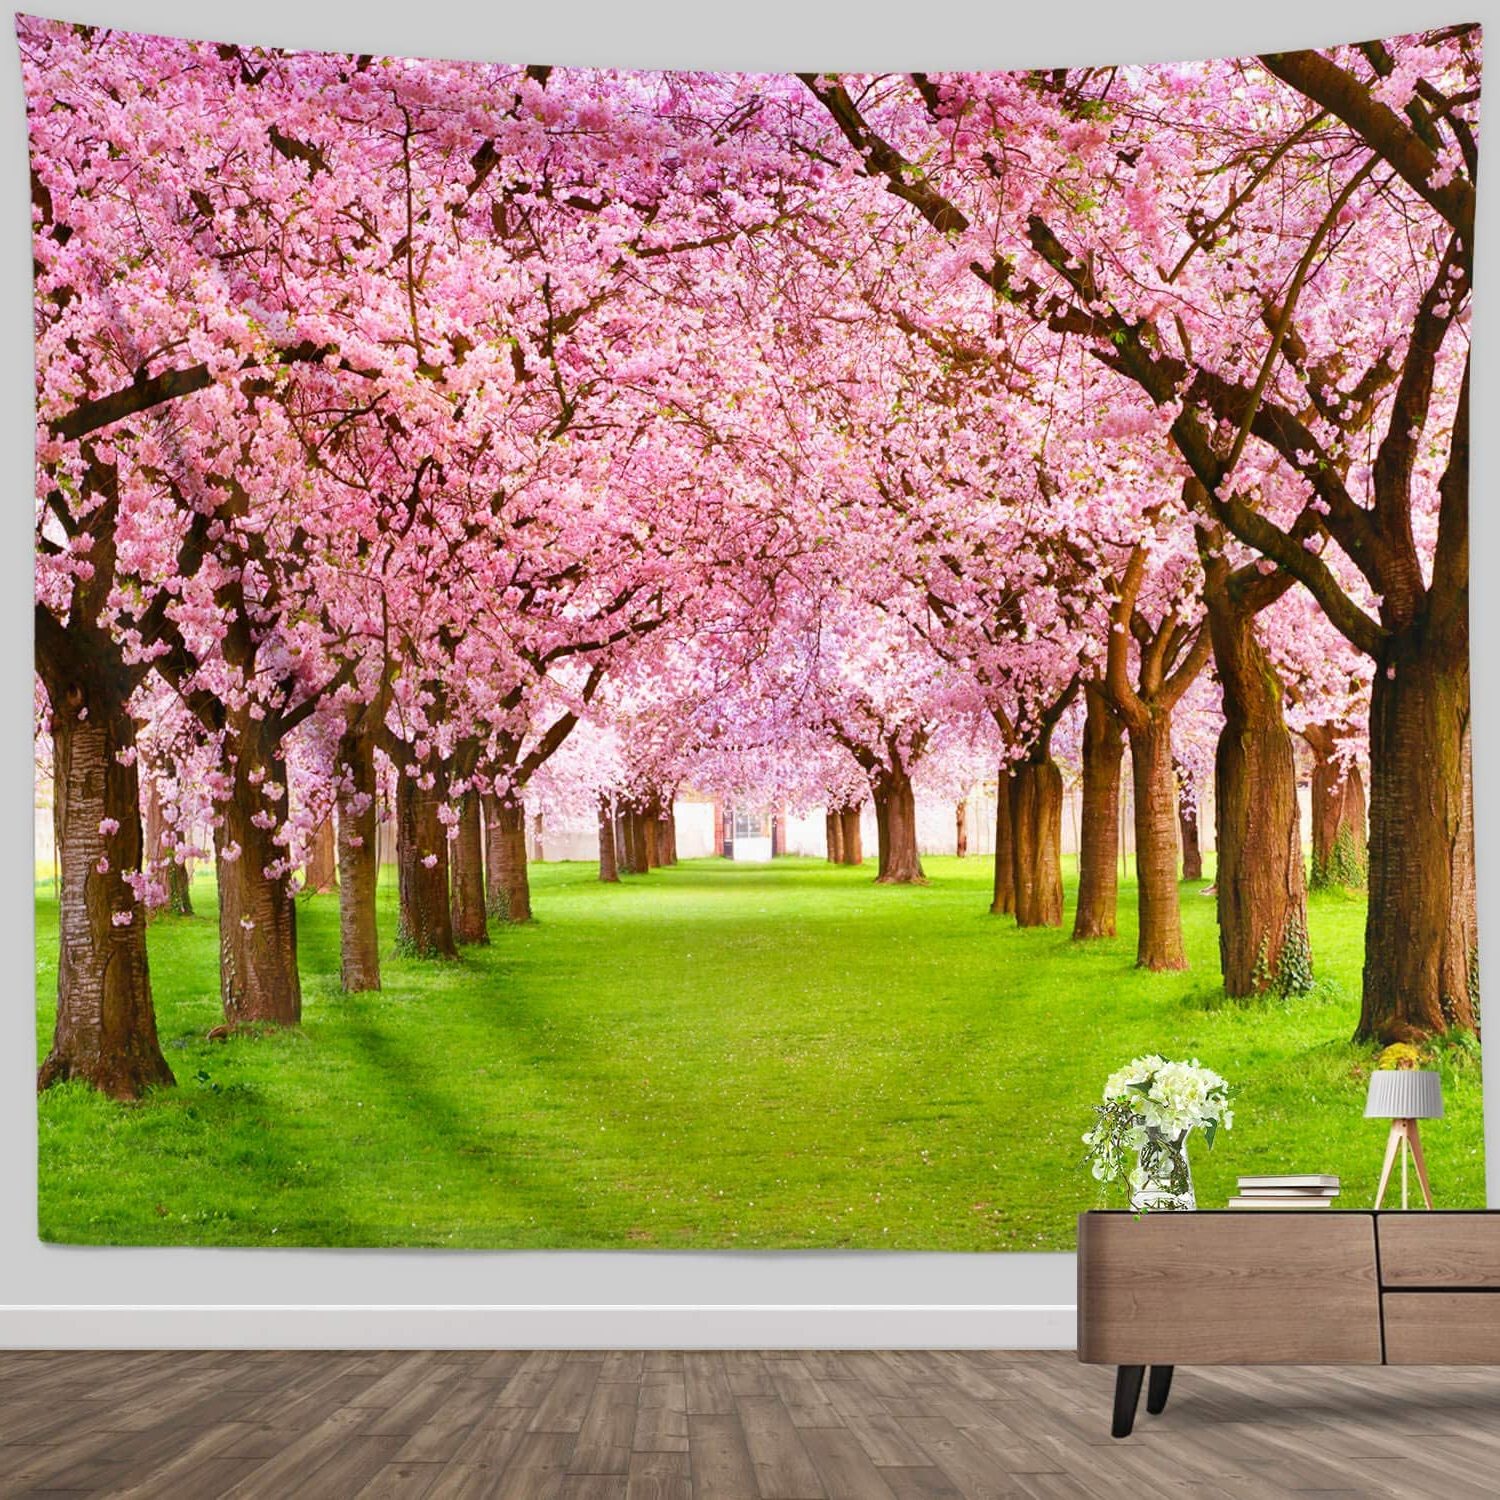 Blended Fabric Spring Party Wall Hangings Inside Favorite Tapestry For Bedroom Teen Girl , Spring Cherry Flower Trees Woodland Grasses Garden Scene Tapestries Nature Wall Hanging For Living Room Dorm Wall (View 4 of 20)